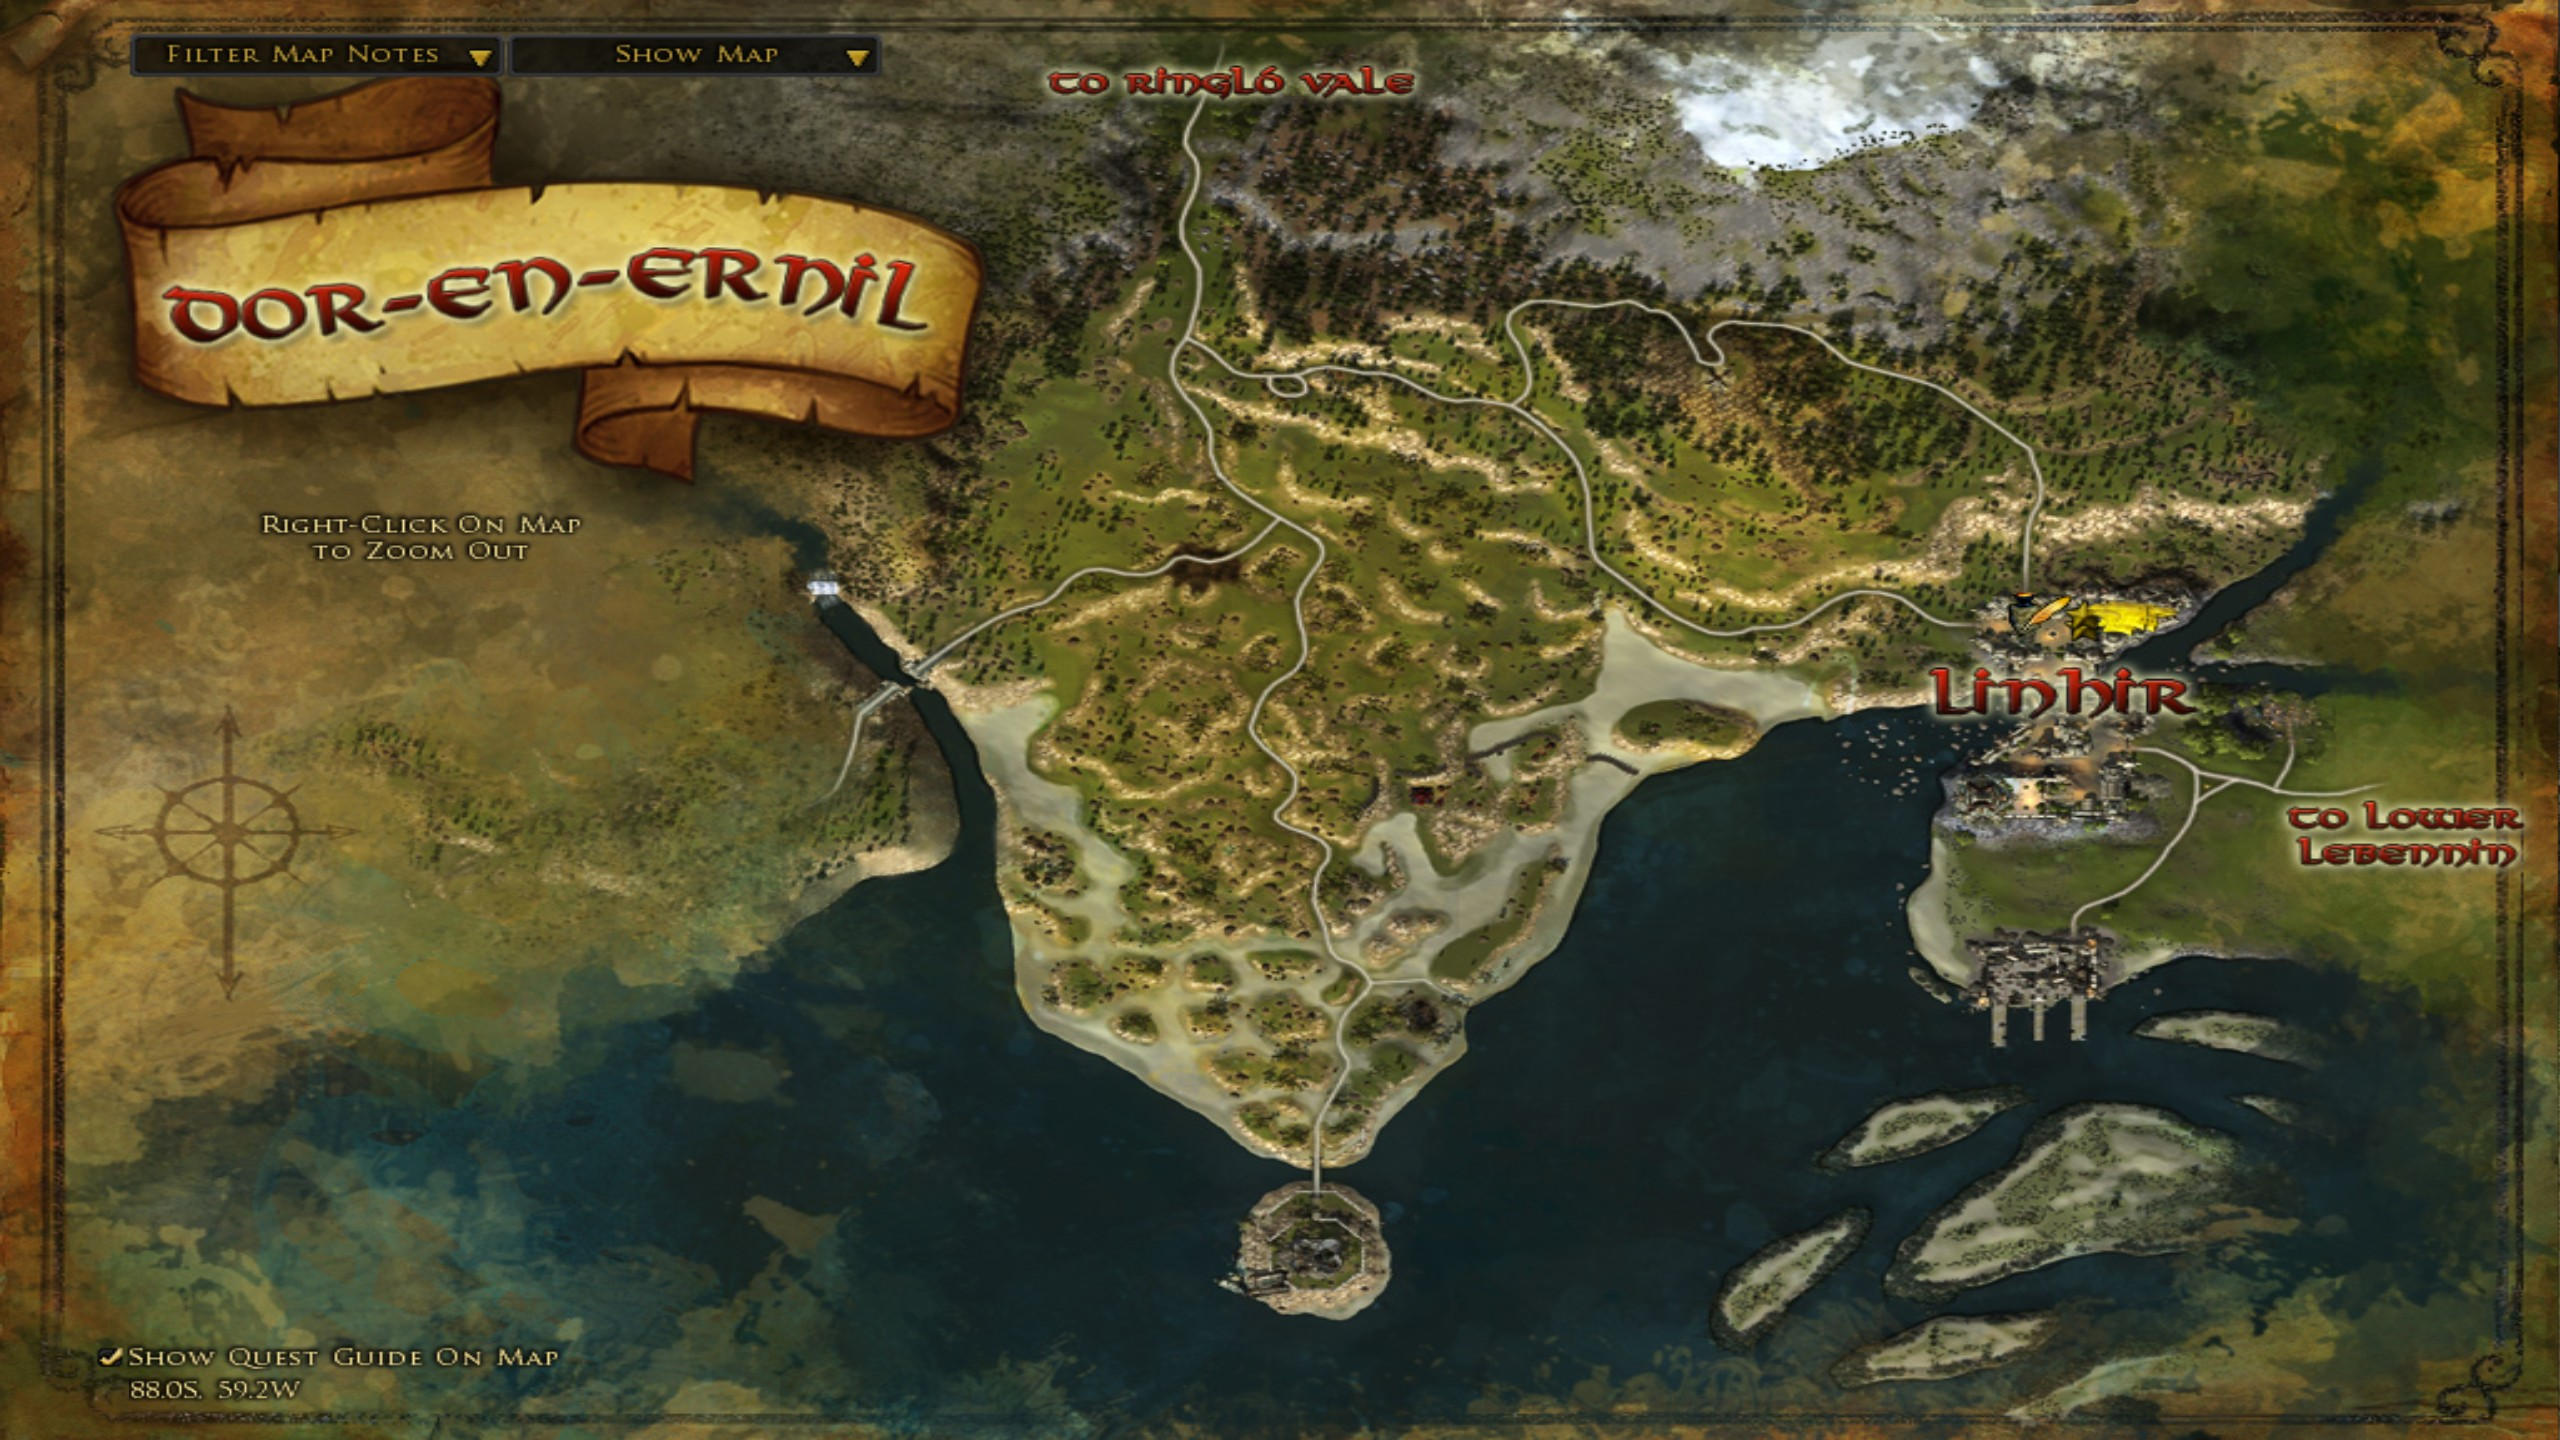 The maps of Central Gondor - Lina's biscuity burrow